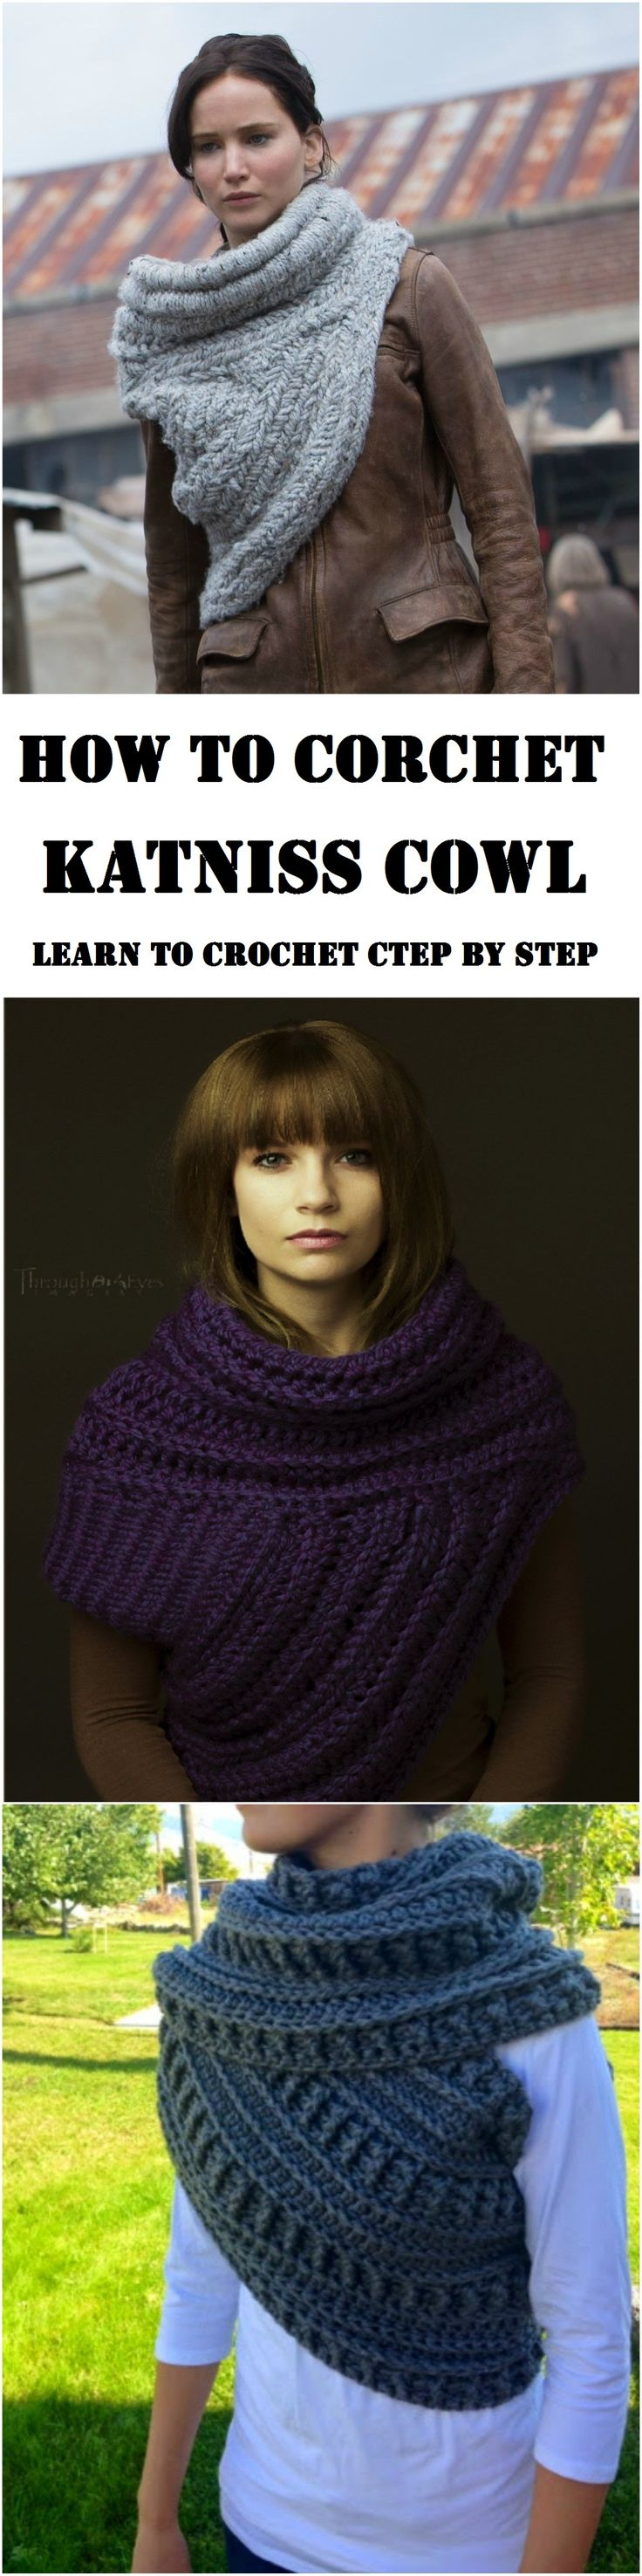 this is a cowl inspired by a book and a movie character Katniss Everdeen, it look very stylish and very warm too. Free instructions, learn how to crochet it